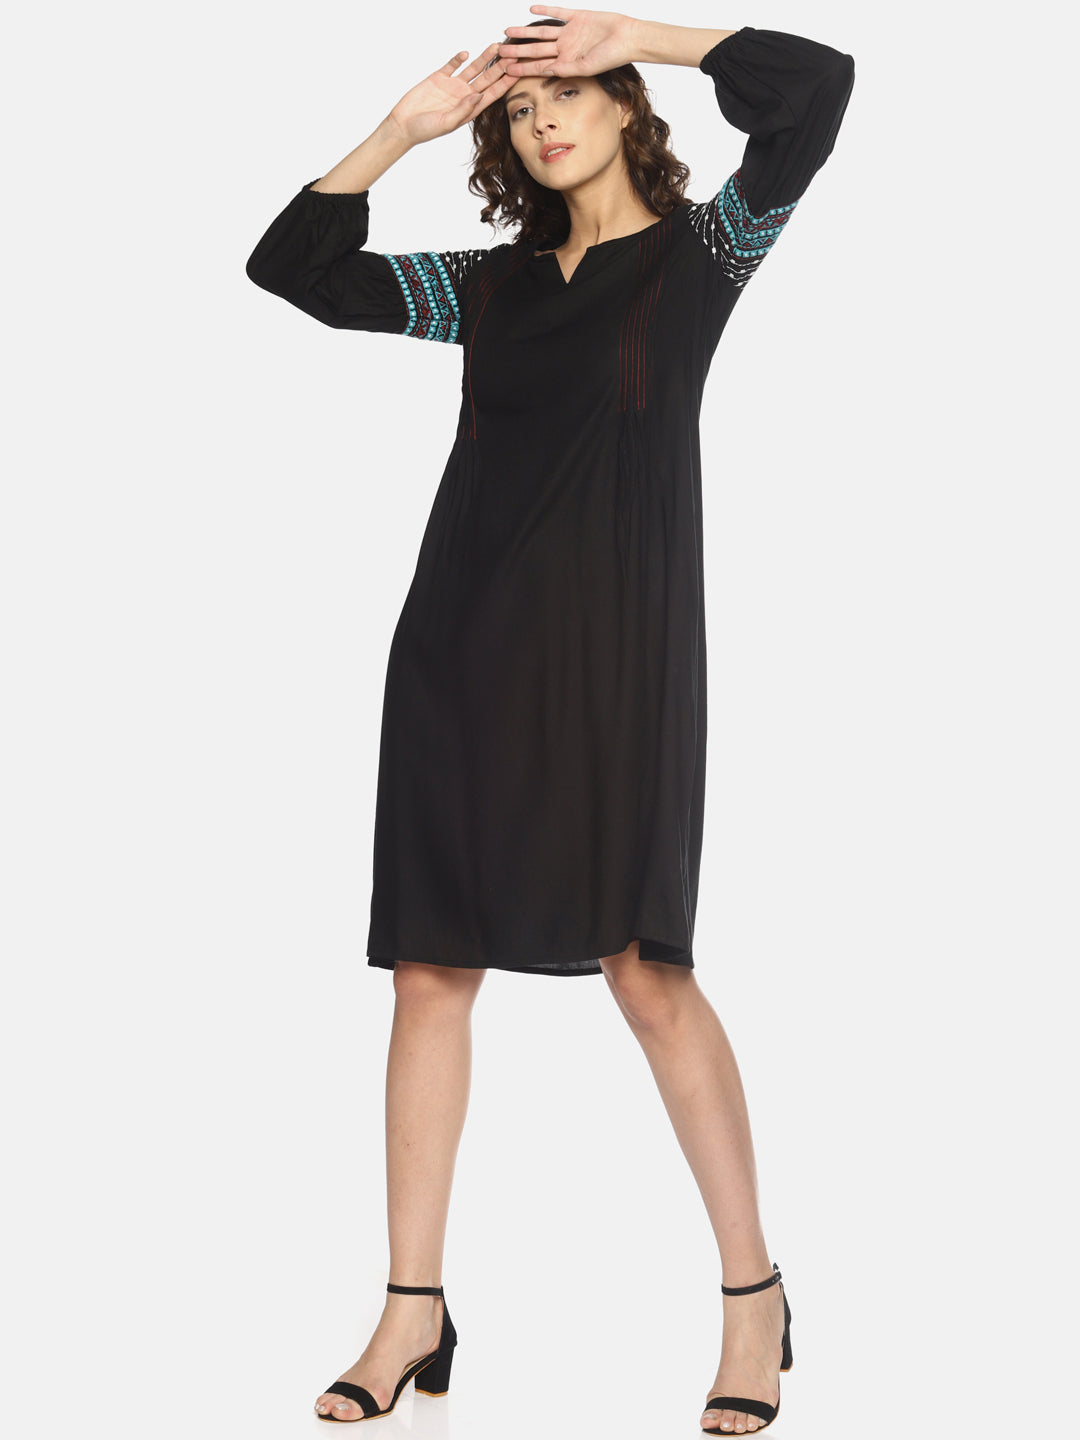 Black Dress With Pintucks and Embroidered Sleeves | UNTUNG